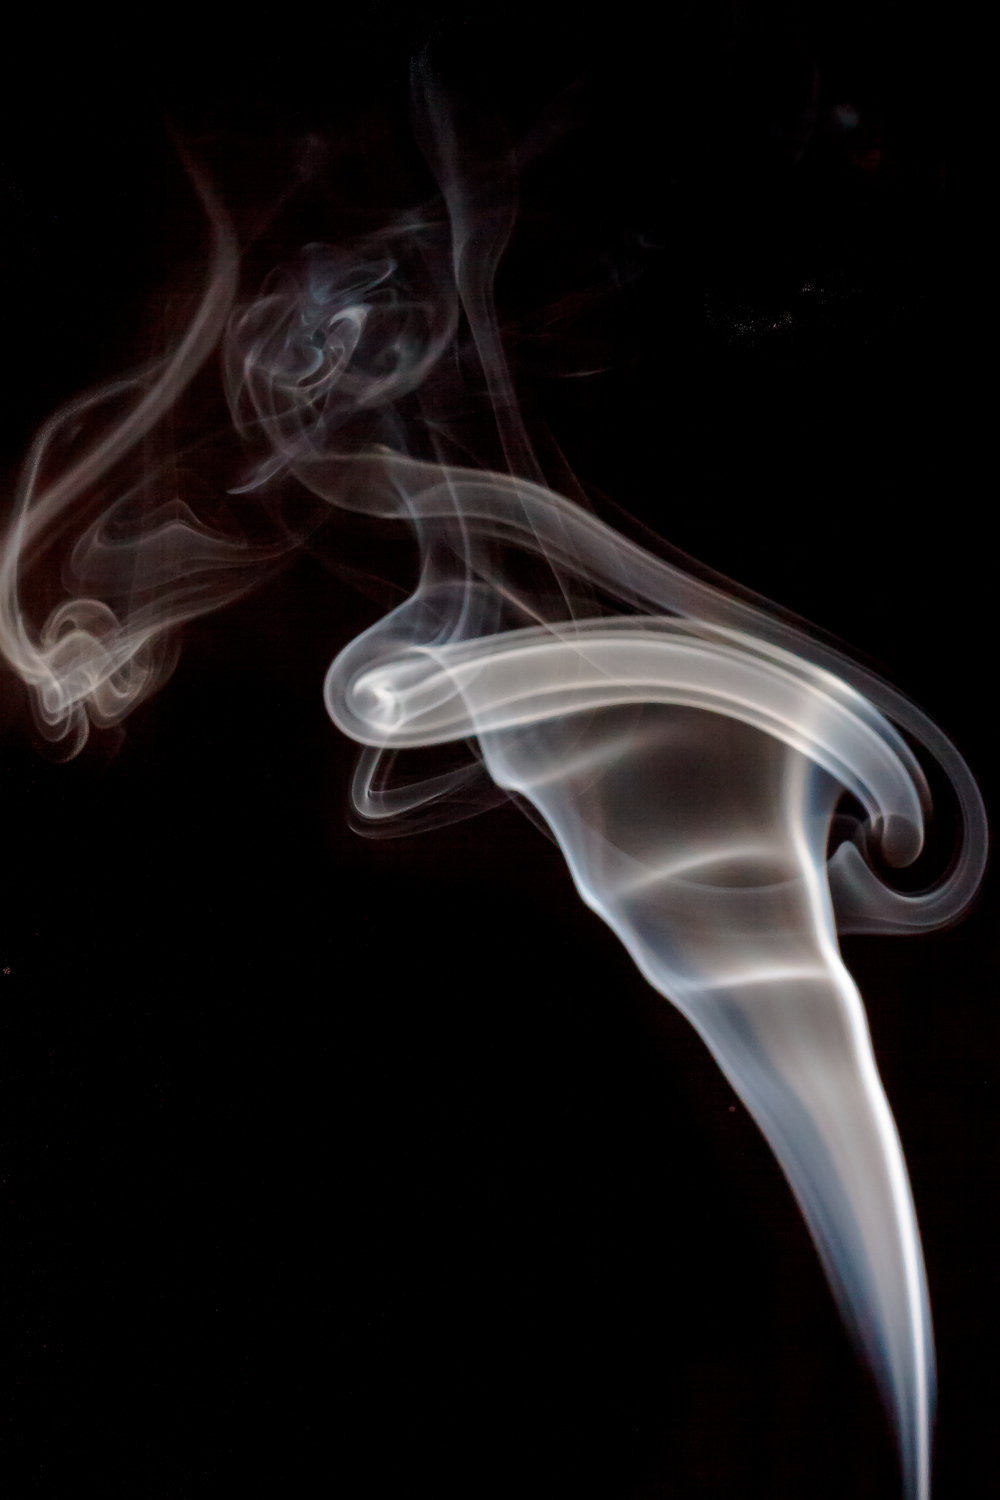 Abstract Smoke Photography - smoke photo straight out of camera